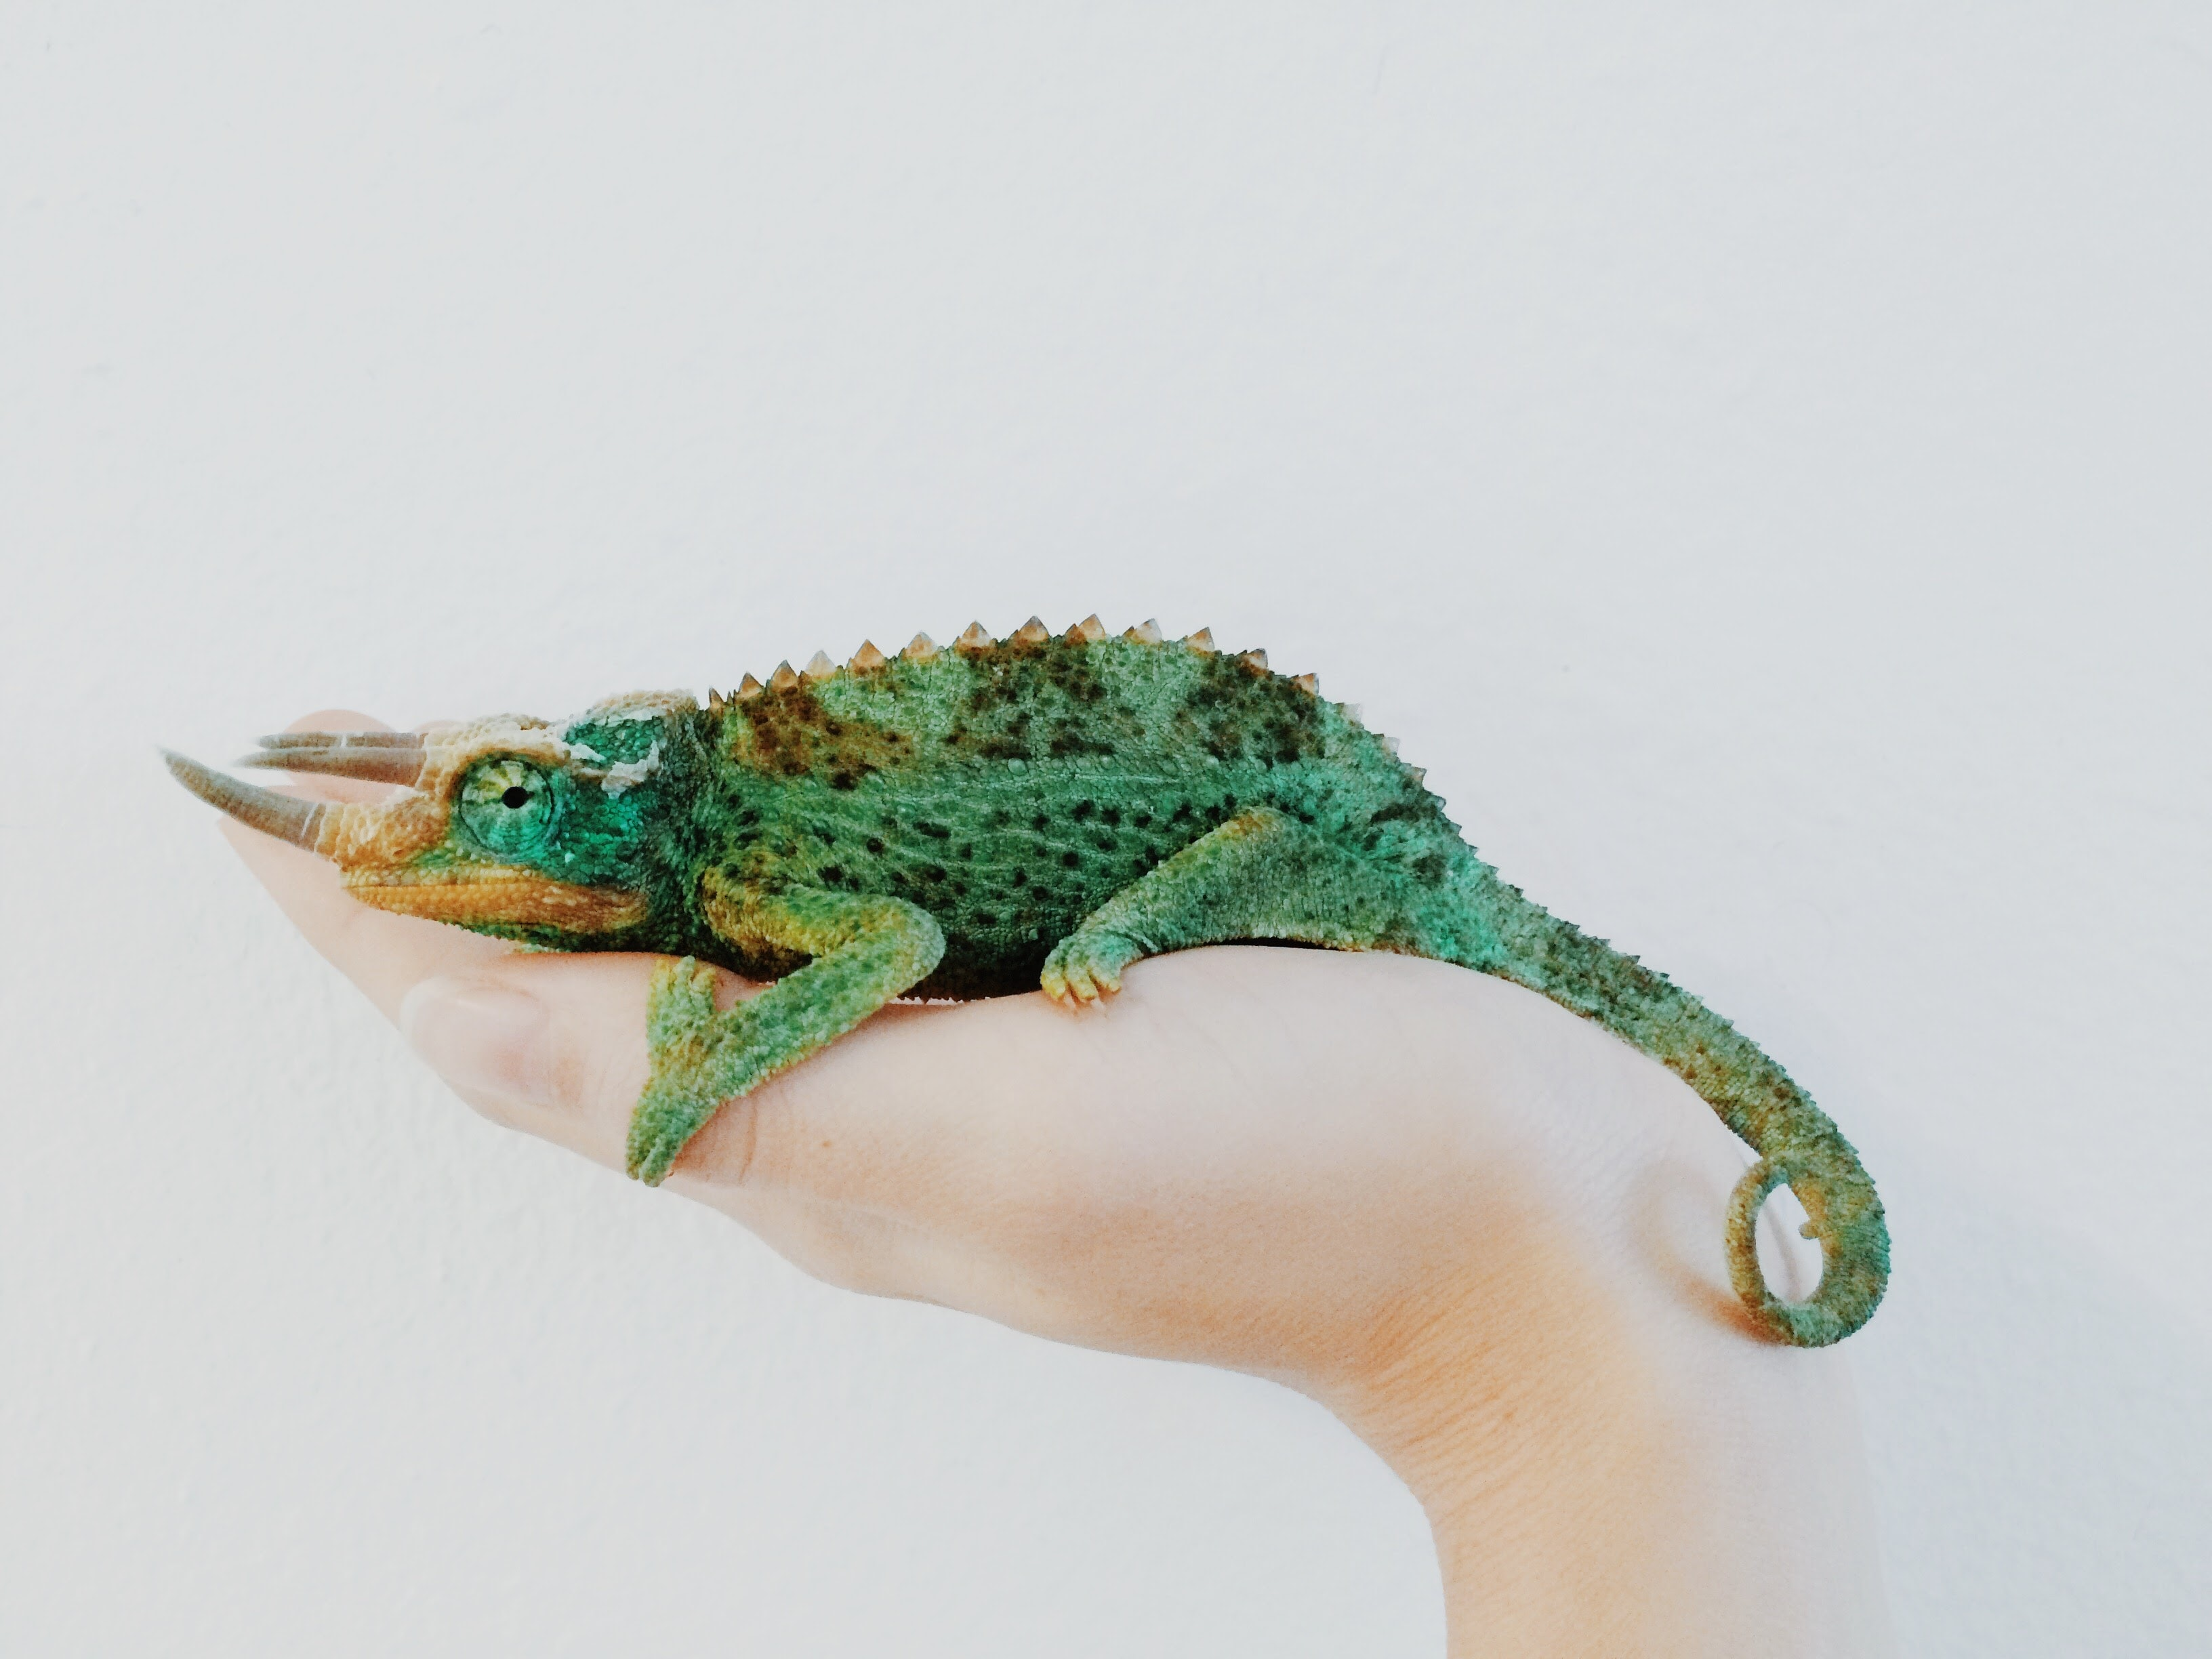 Colorful green chameleon calmly sits in a person's hand